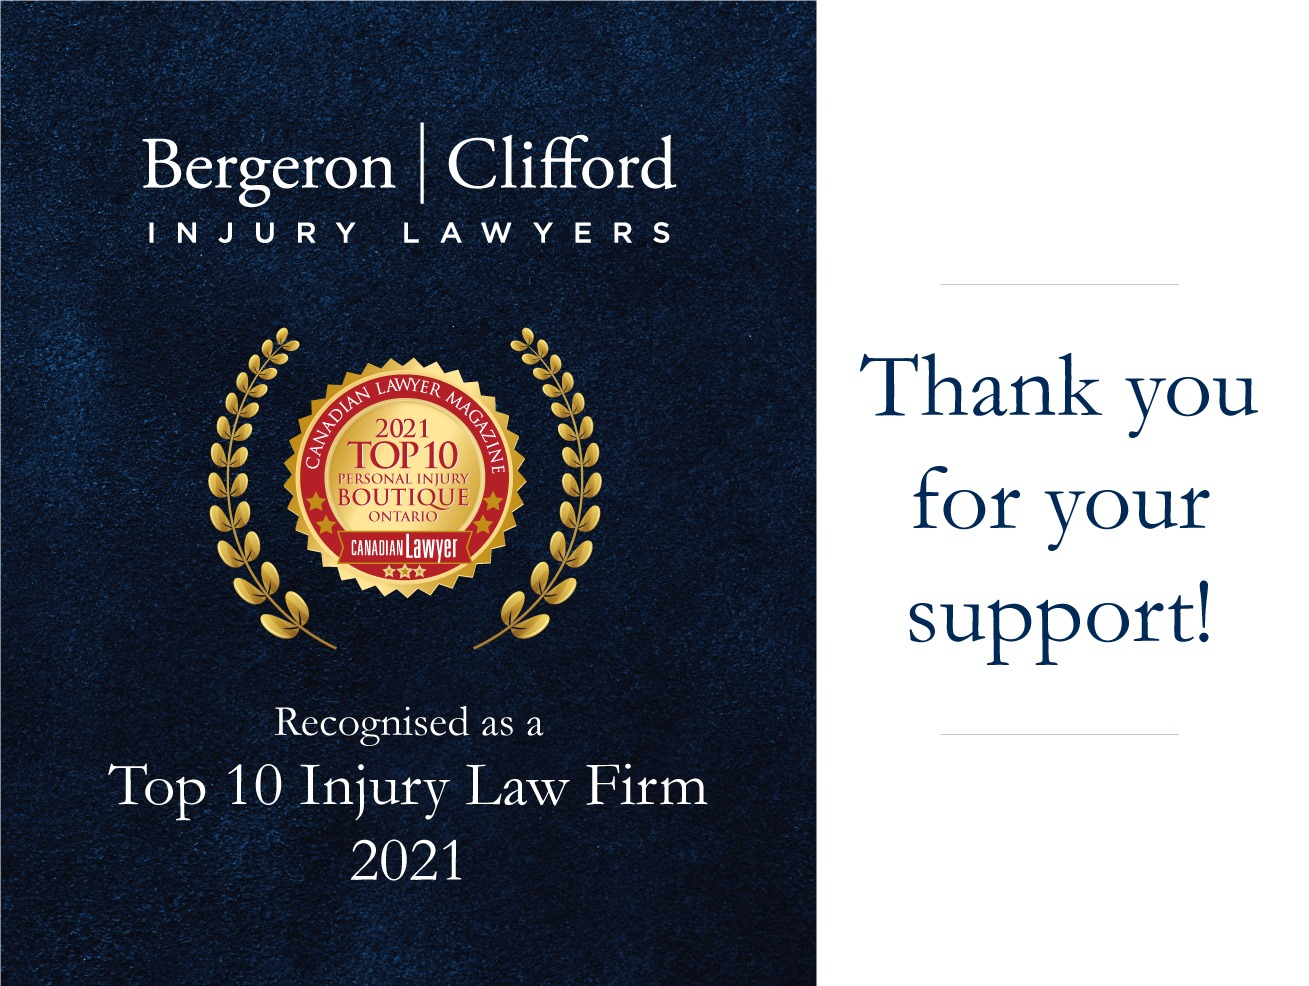 Top 10 Personal Injury Law Firm_Thank you for your support